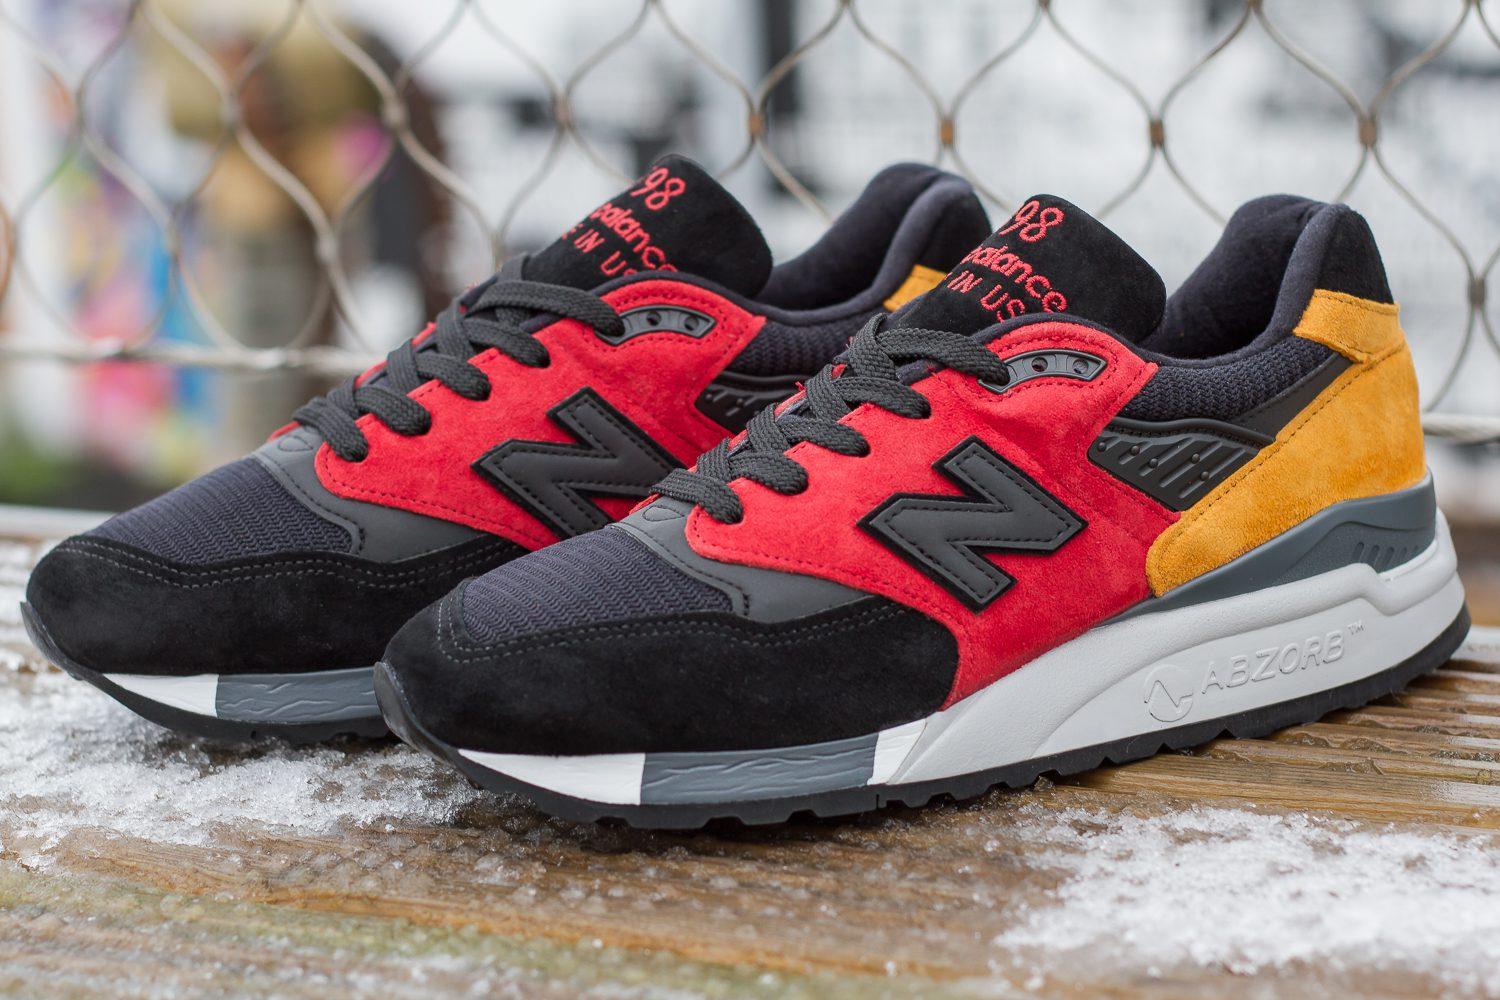 Berlin Inspired New Balance 998 Made In The Usa Limited